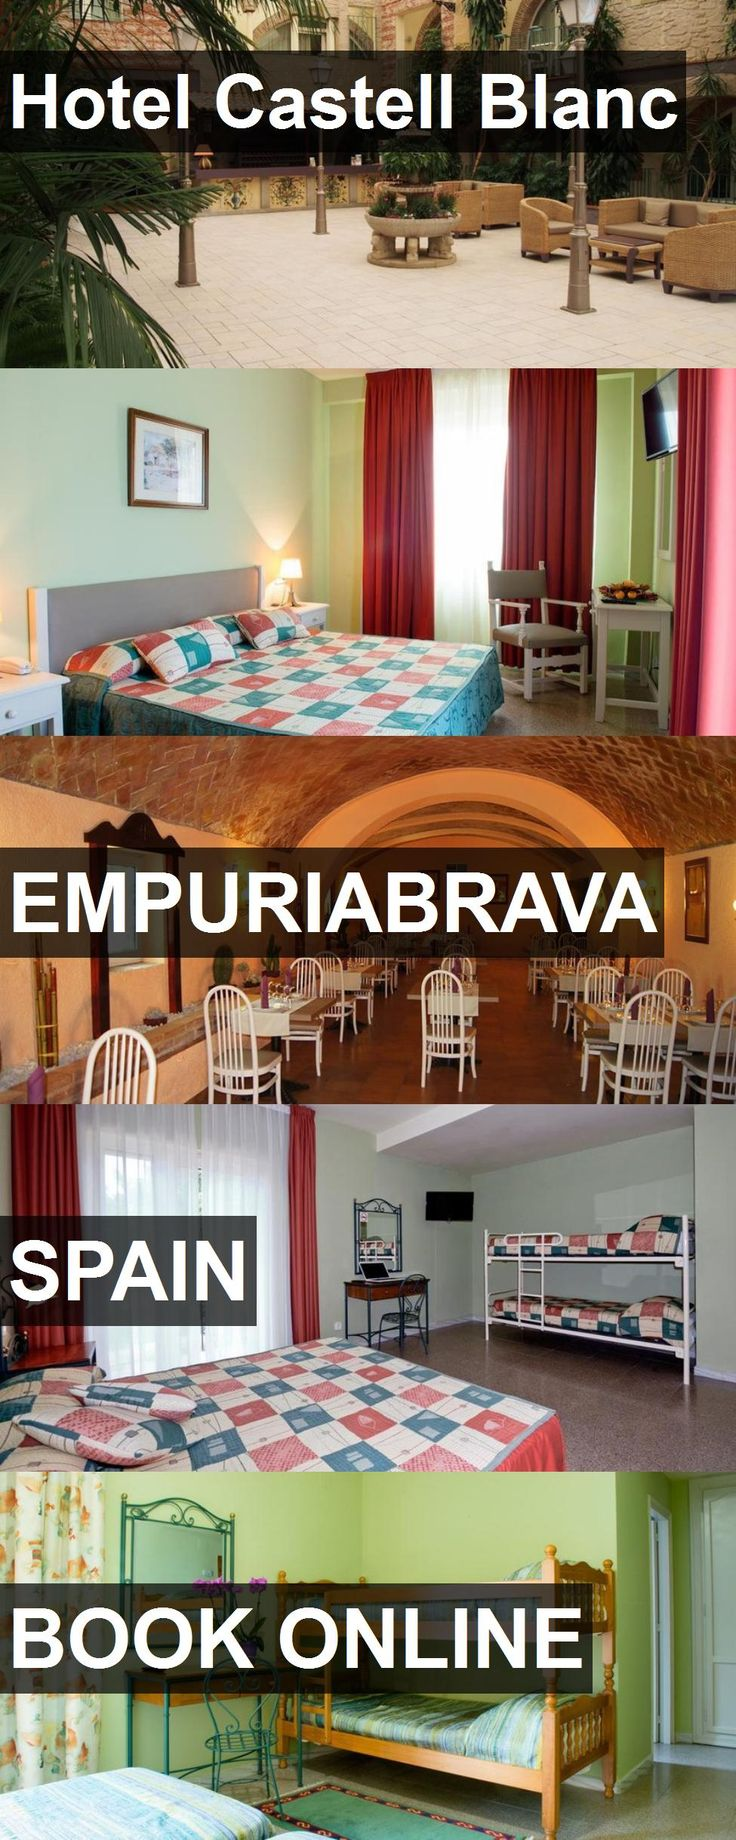 Hotel Castell Blanc in Empuriabrava, Spain. For more information, photos, reviews and best prices please follow the link. #Spain #Empuriabrava #travel #vacation #hotel